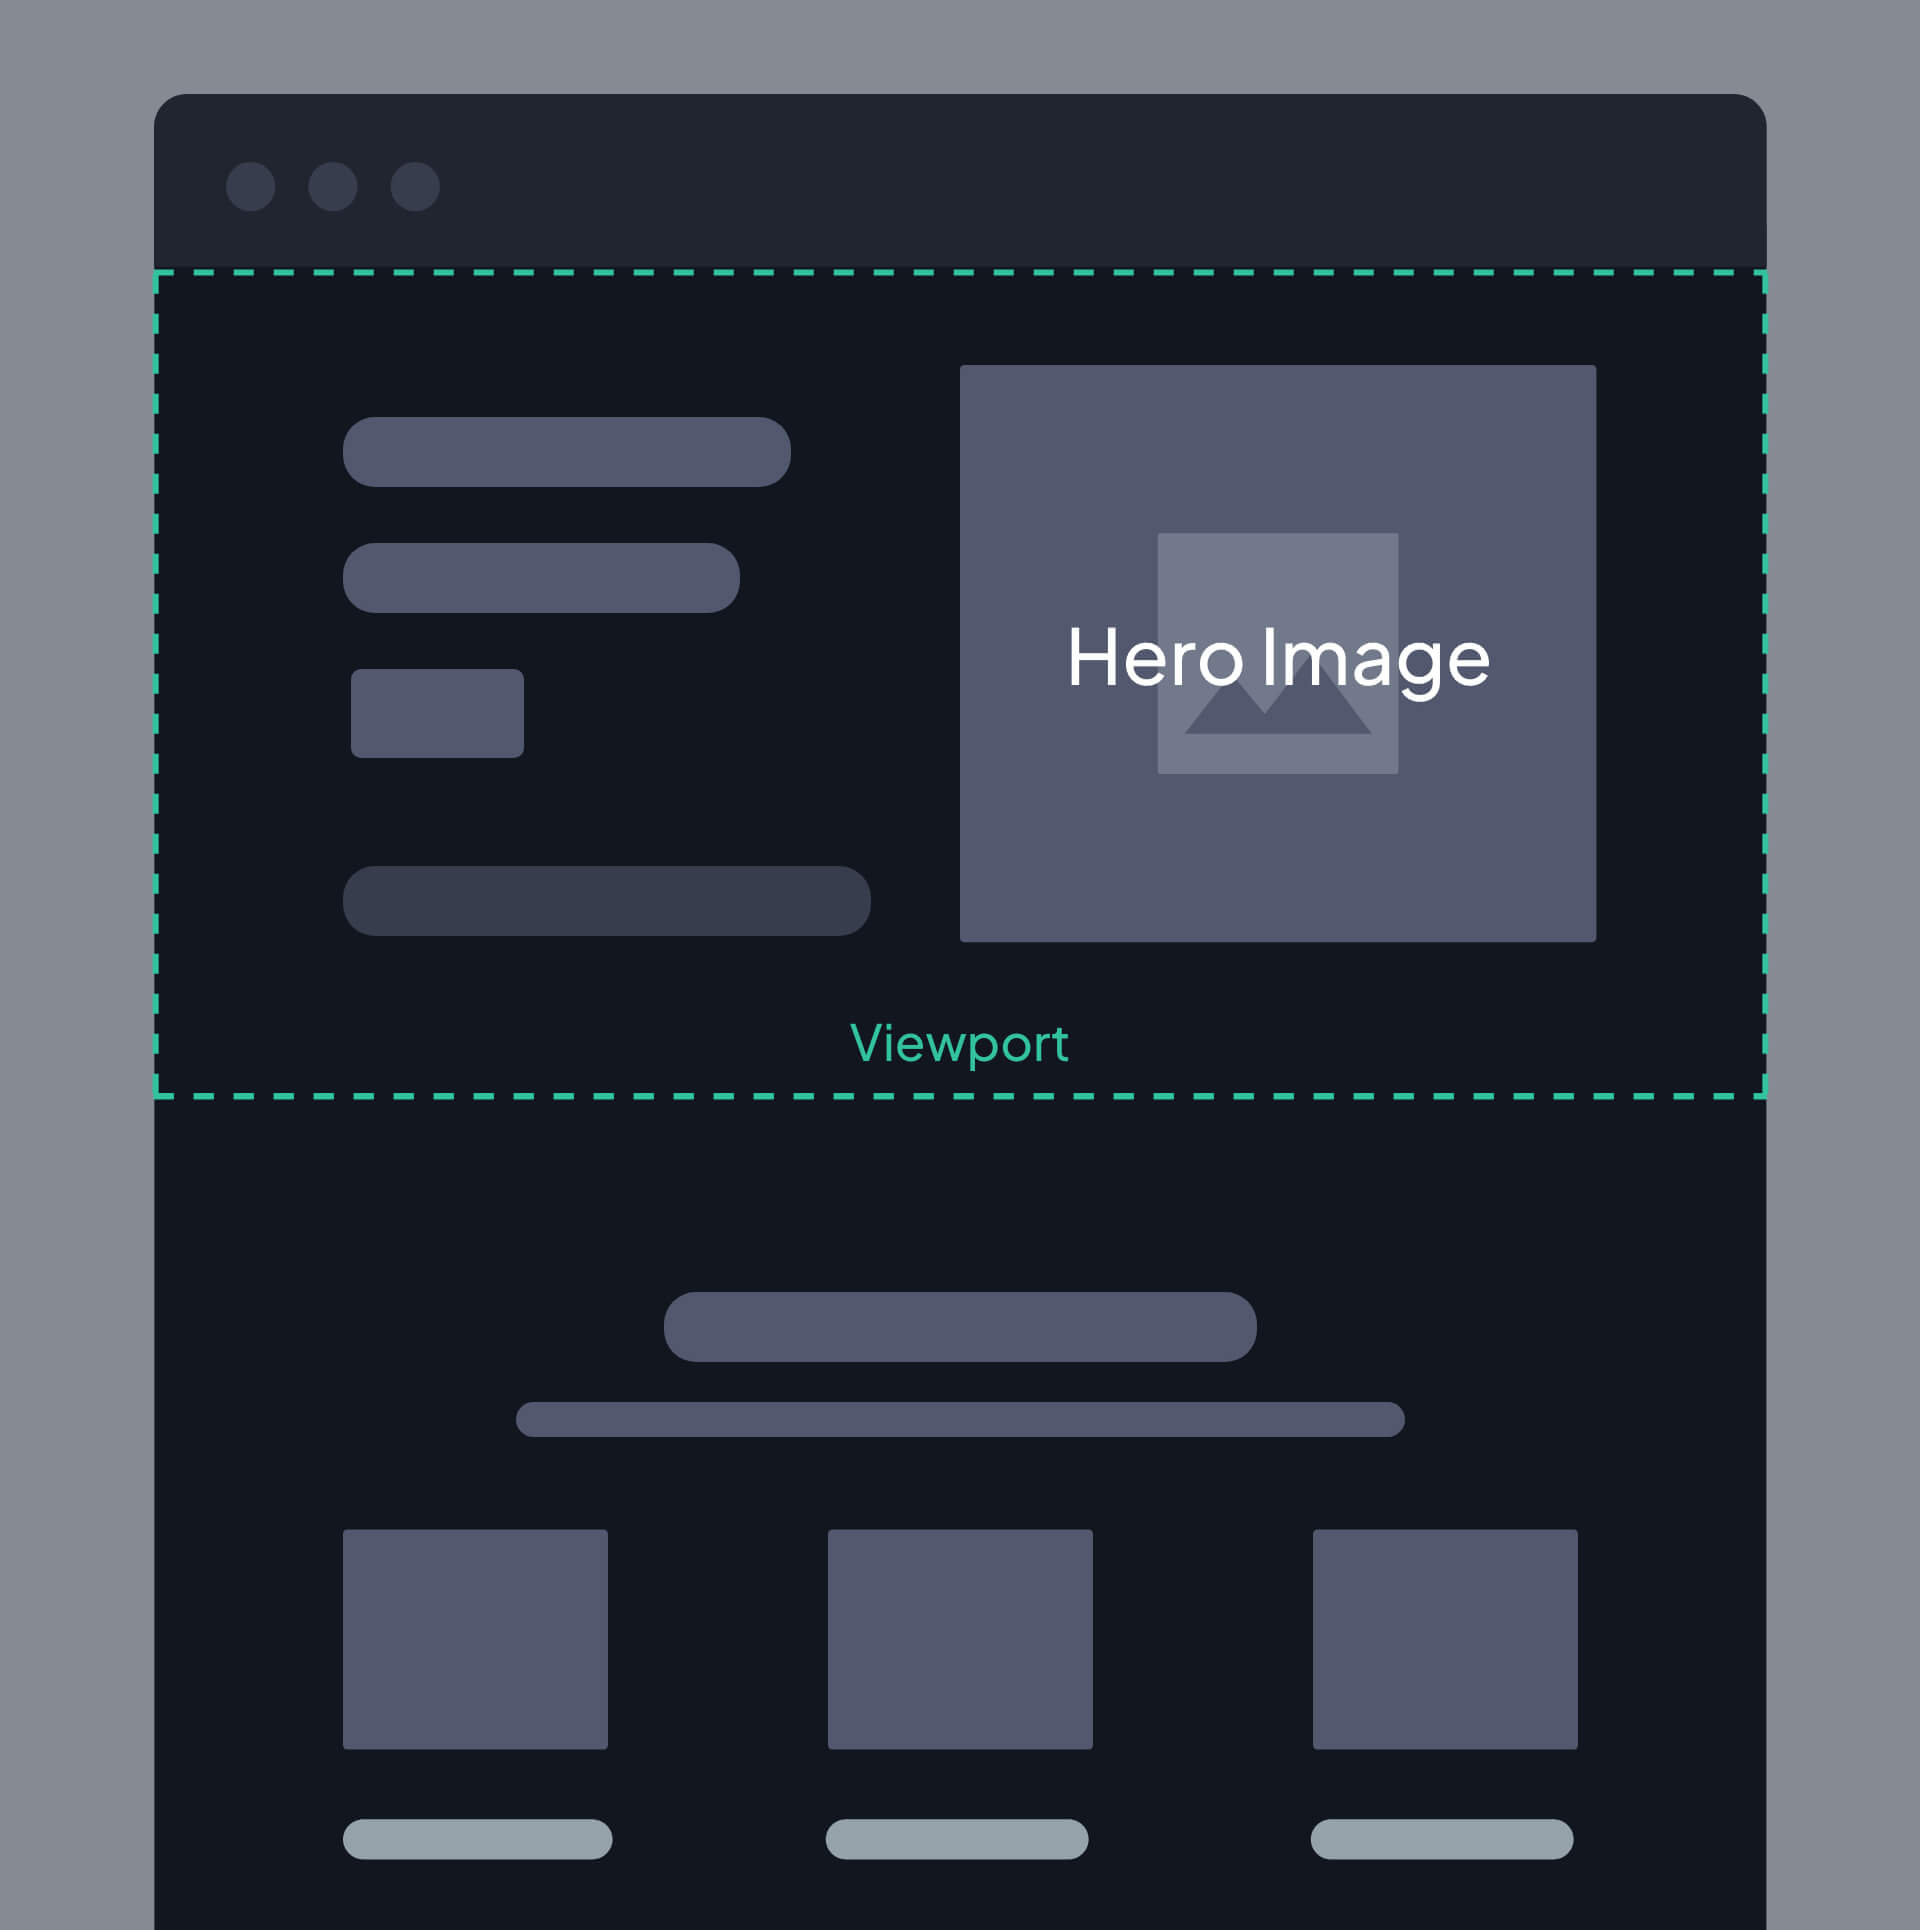 Wireframe of a Website with a hero image.